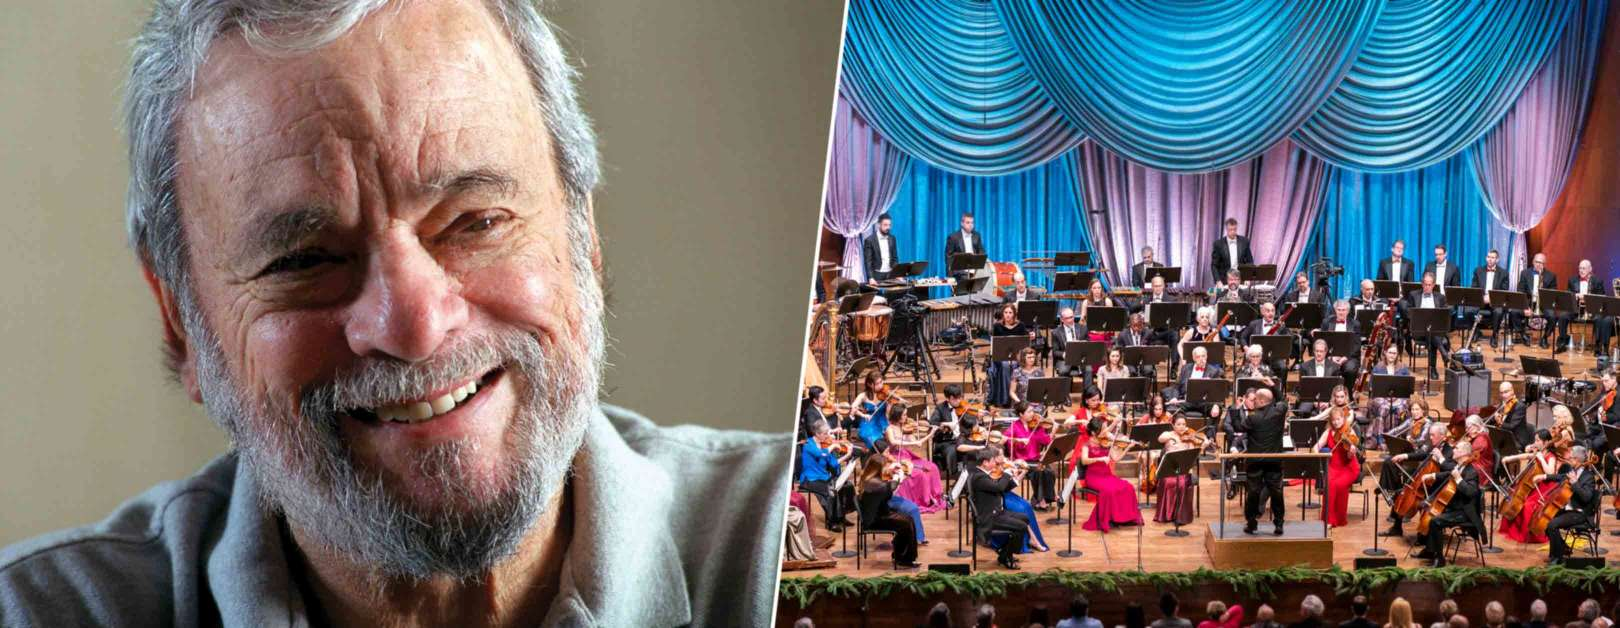 New Year's Eve: Celebrating Sondheim